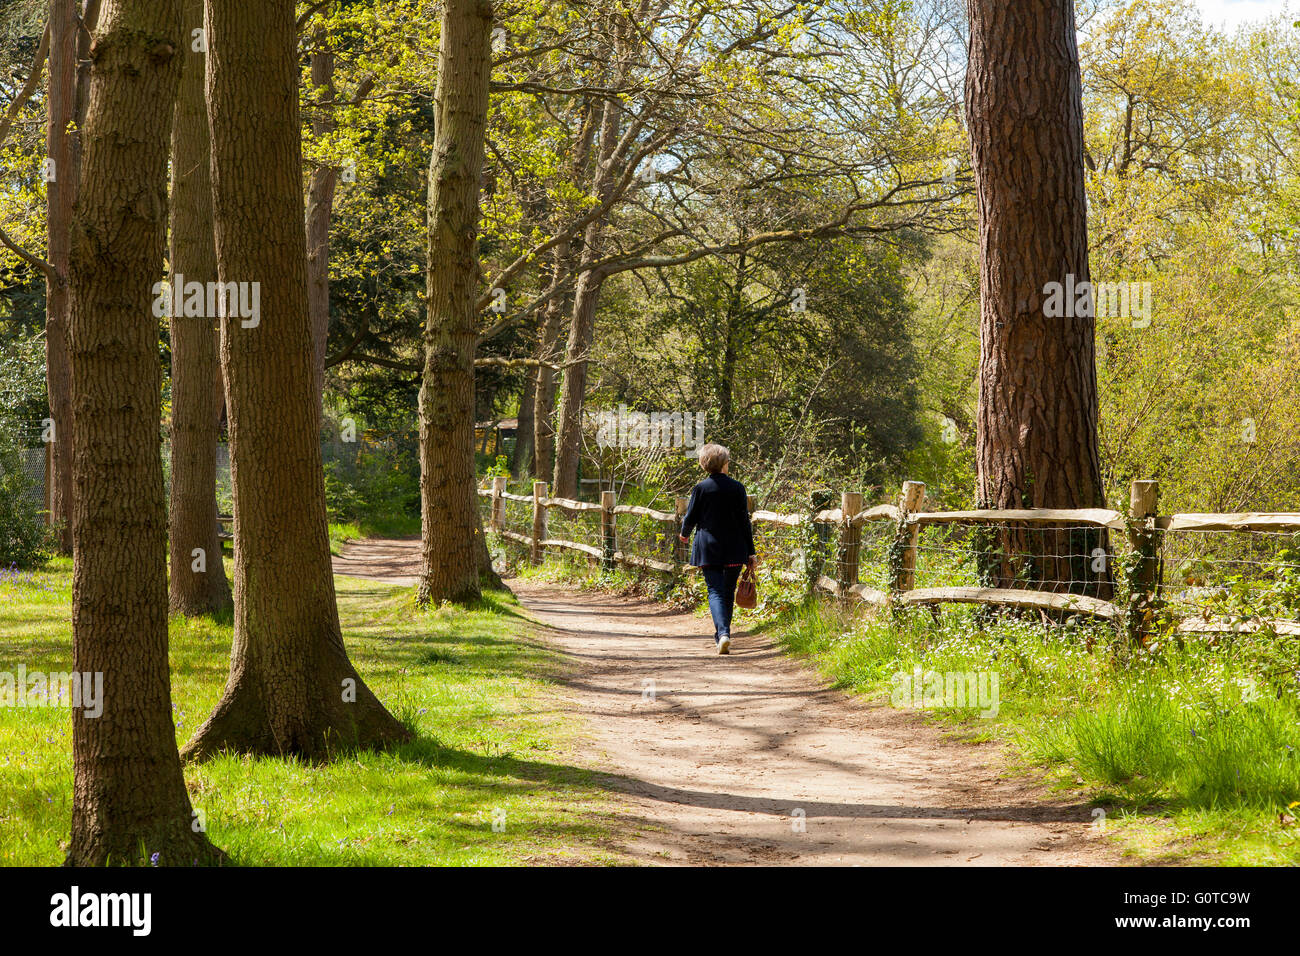 A woman walks through a path in the woods on a bright, sunny day in England - Stock Image